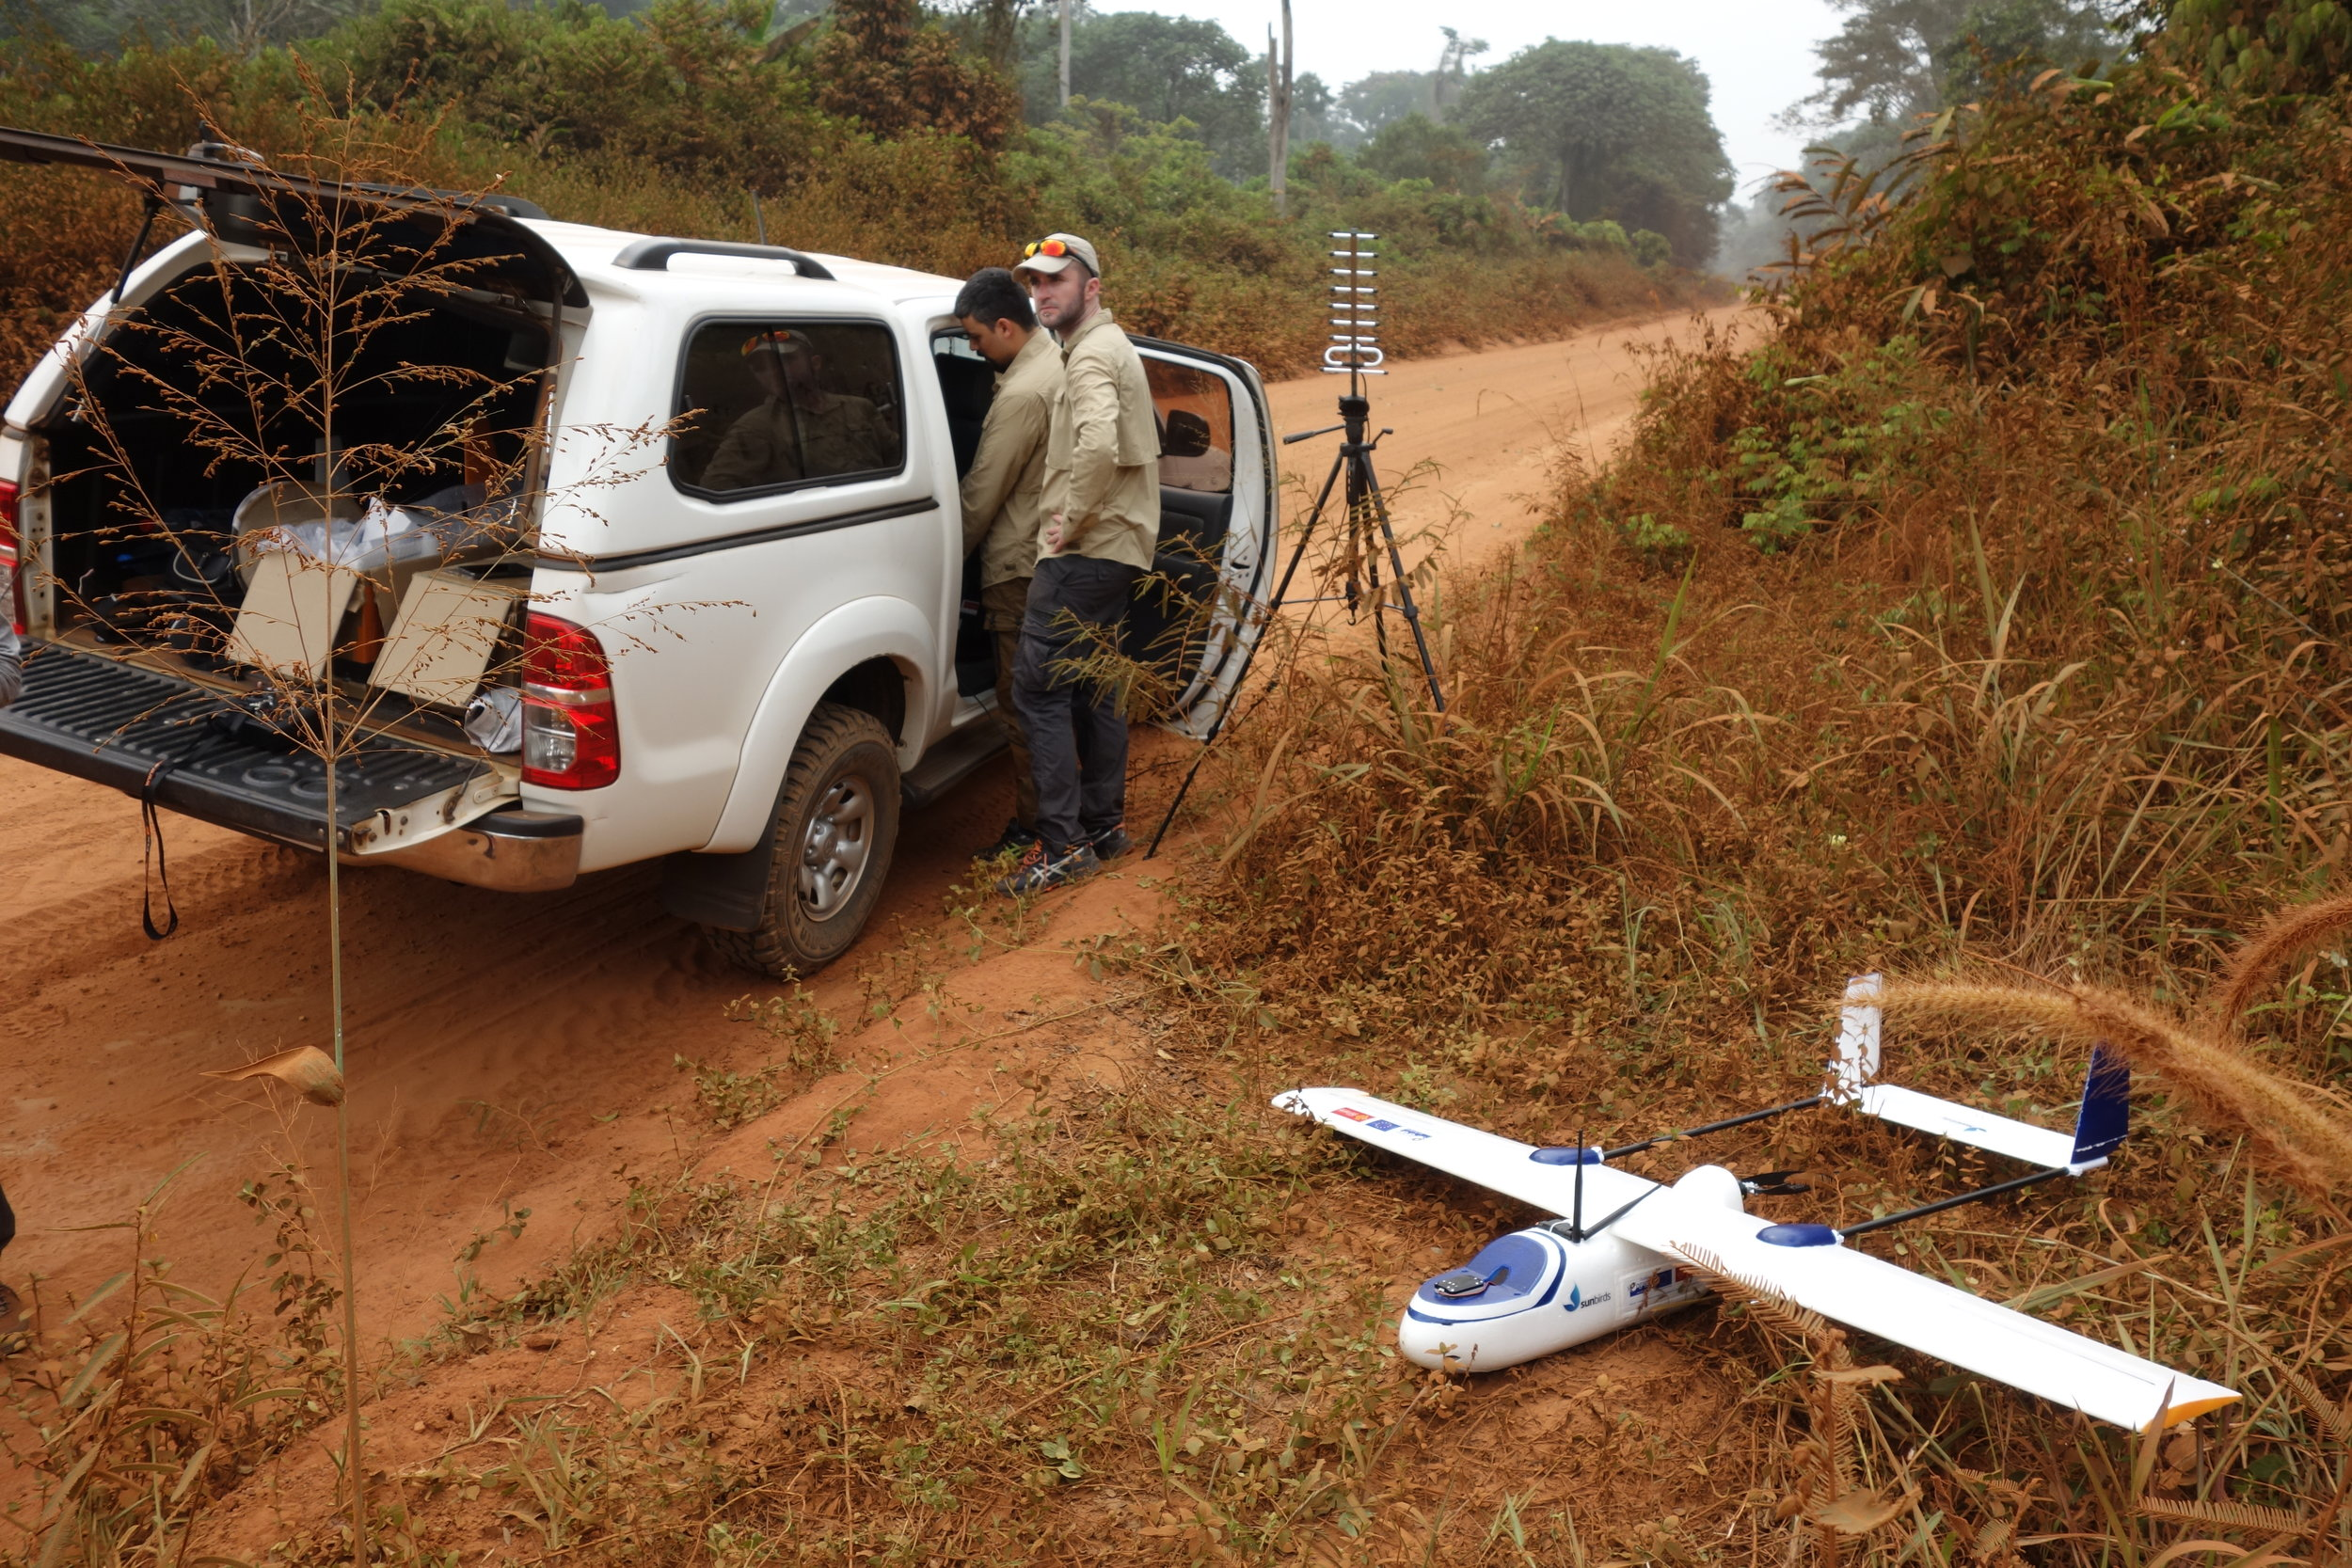 Fly Everywhere, Anytime - With a fuselage made of EPO, the Tigerwing is adapted to the harshest environments and weather conditions. Lightweight and easy to repair, this drone will allow you to take-off and land in the most difficult part of the world, like here, in the Jungle of North Congo.